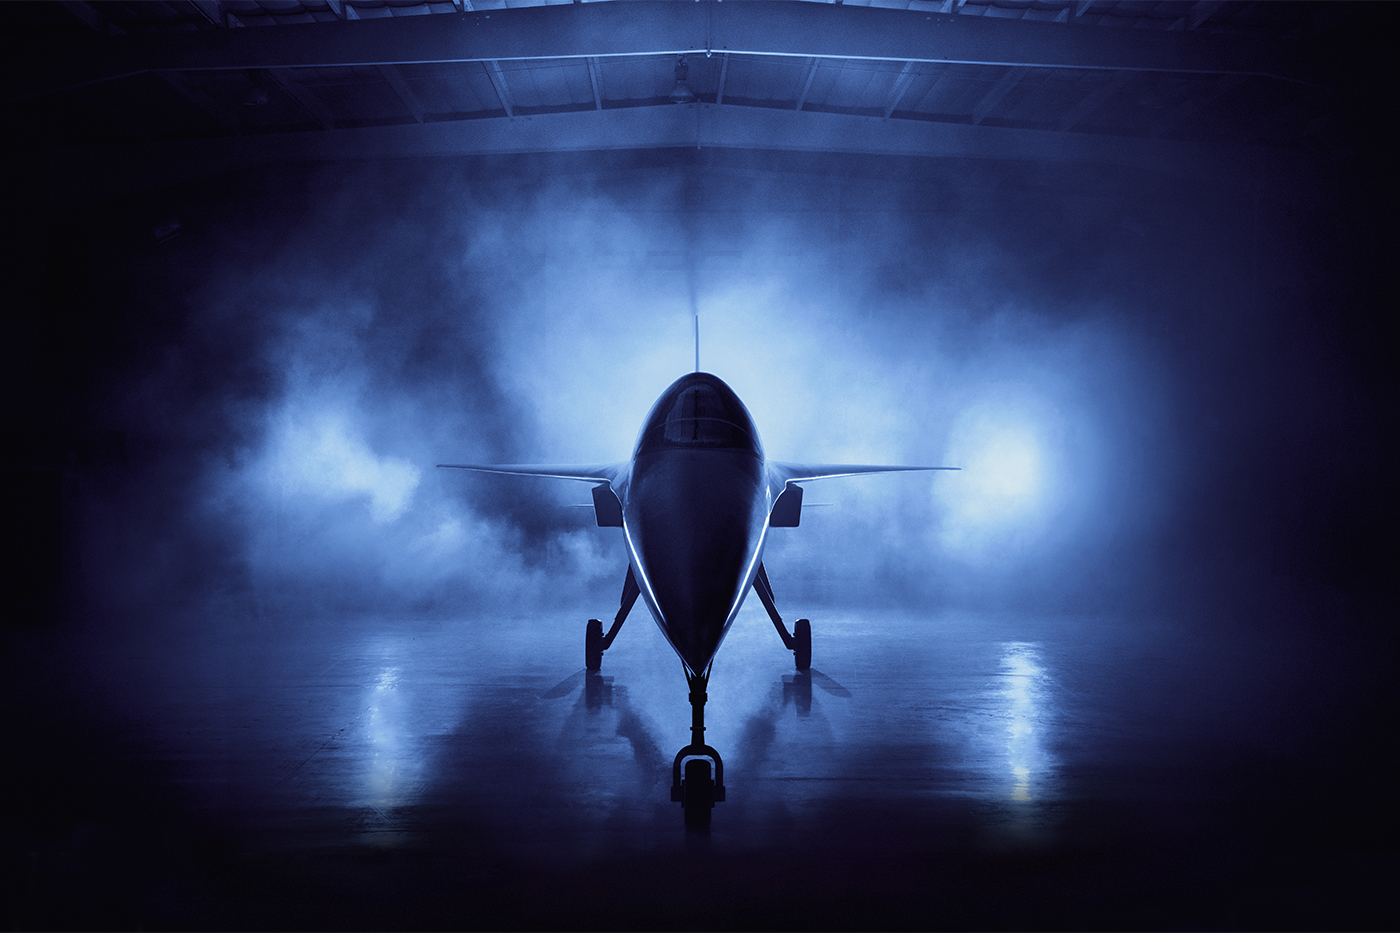 A supersonic airplane sits in a hangar surrounded by fog and illuminated by blue light.